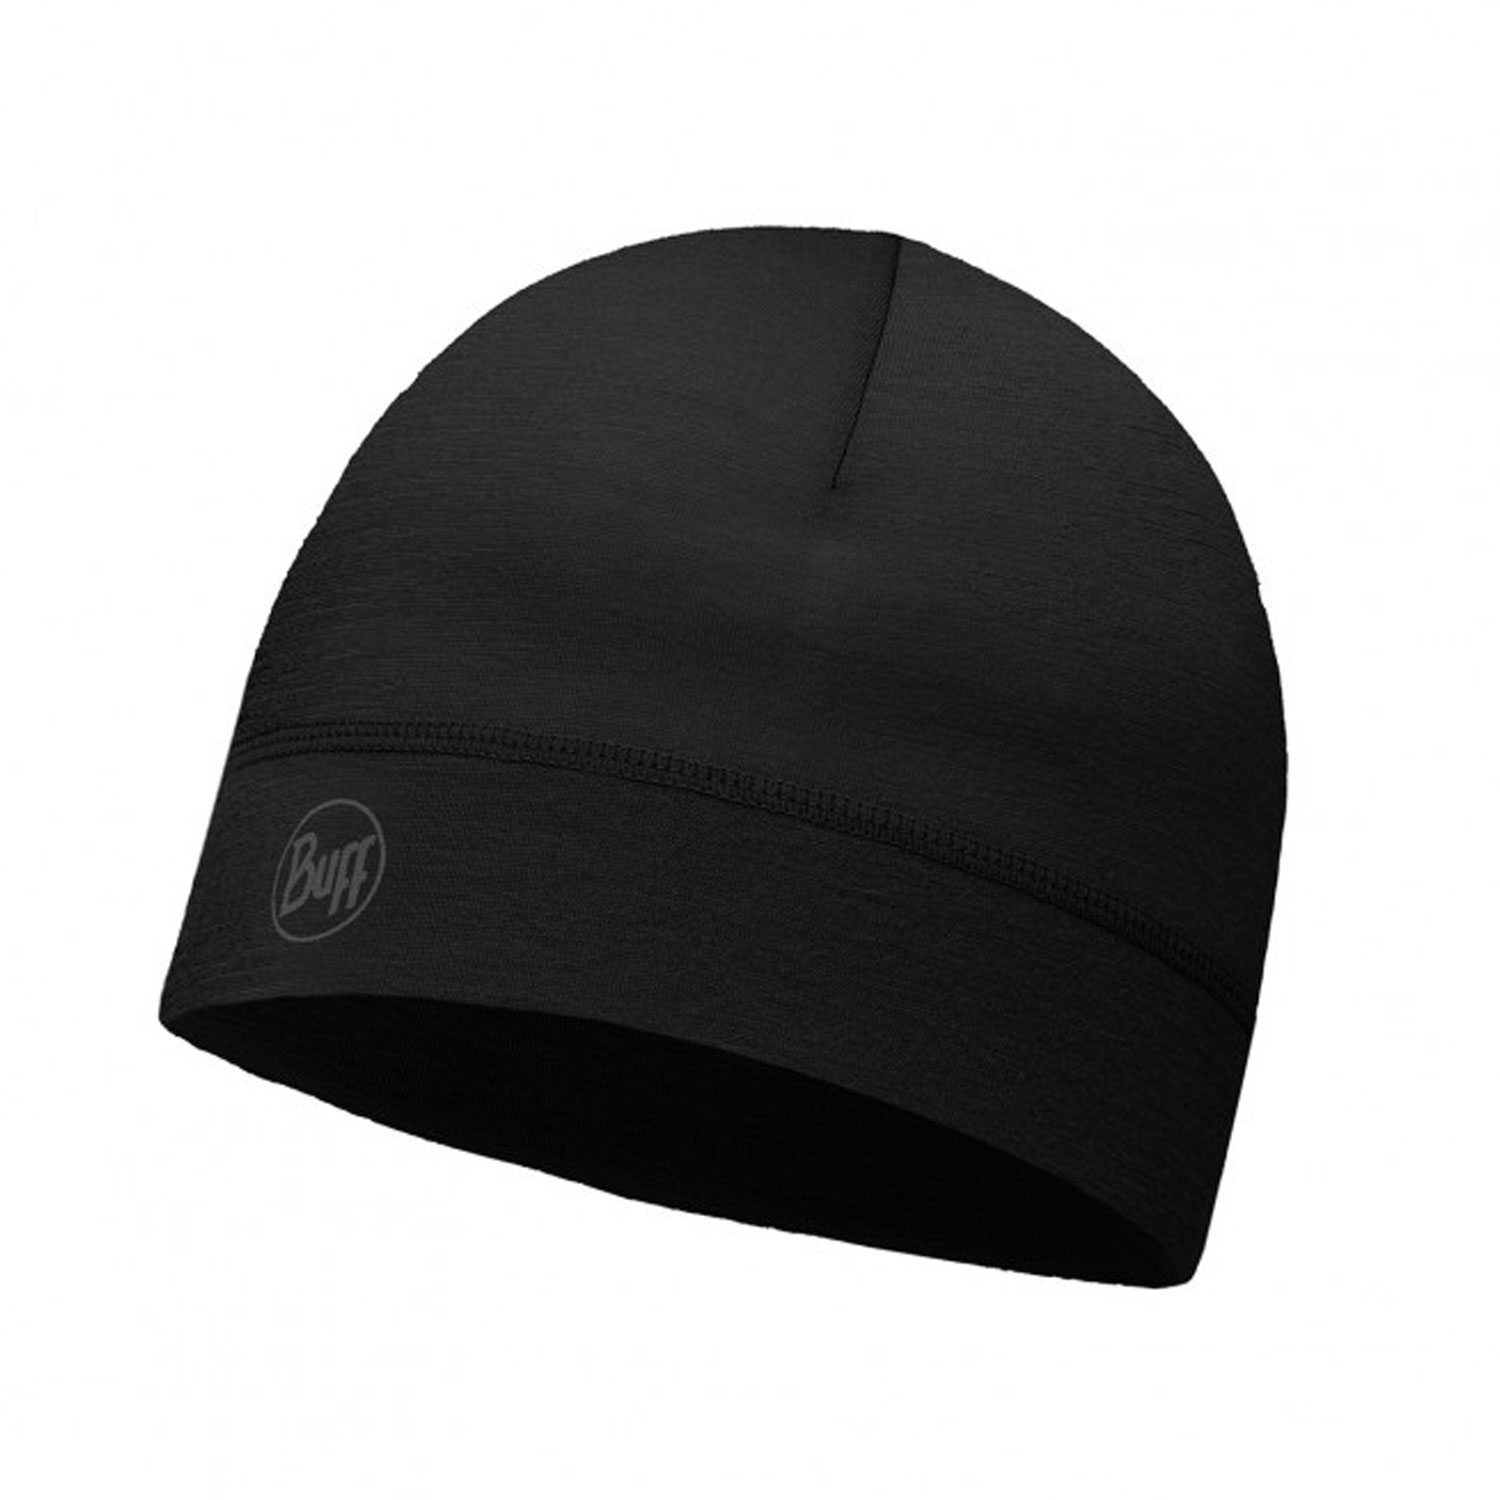 Купить Шапка BUFF THERMONET HAT SOLID BLACK Банданы и шарфы Buff ® 1319626